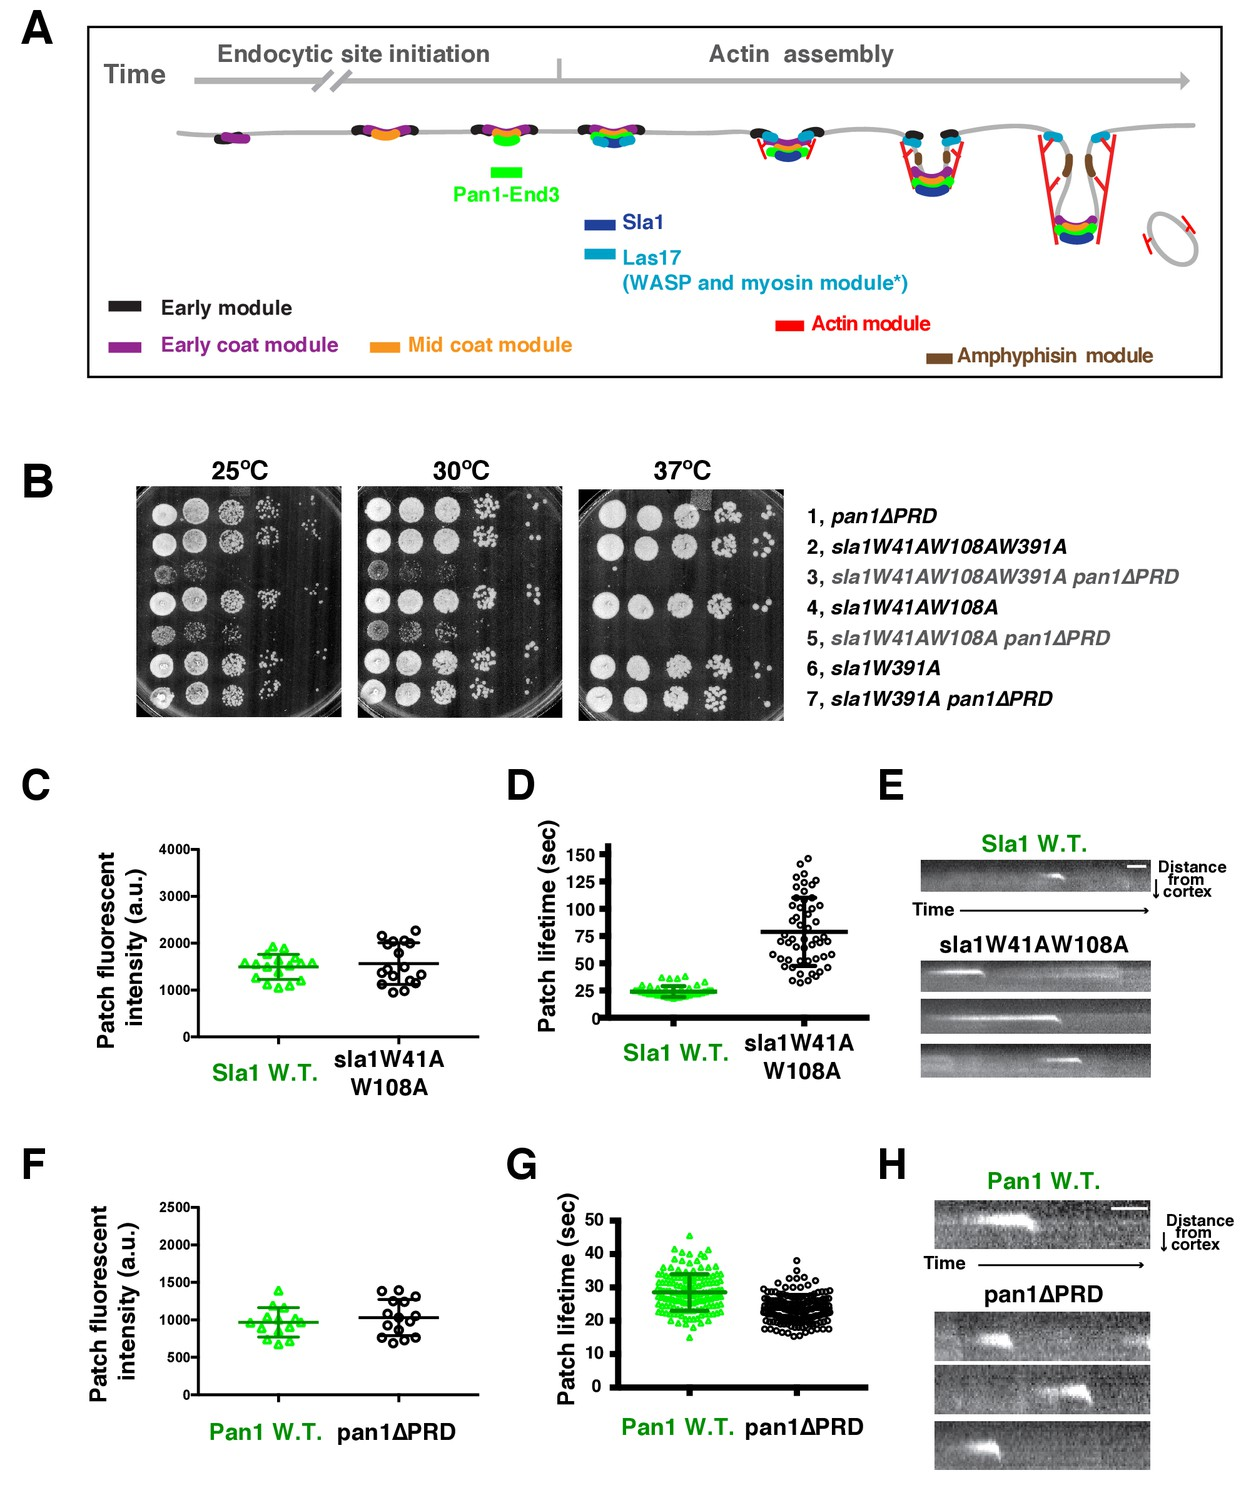 Switch Like Arp2 3 Activation Upon Wasp And Wip Recruitment To An No Disassemble Johnny 5is Alive Two Sla1 Sh3 Domains A Pan1 Prd Domain Share Crucial Role For Cell Growth